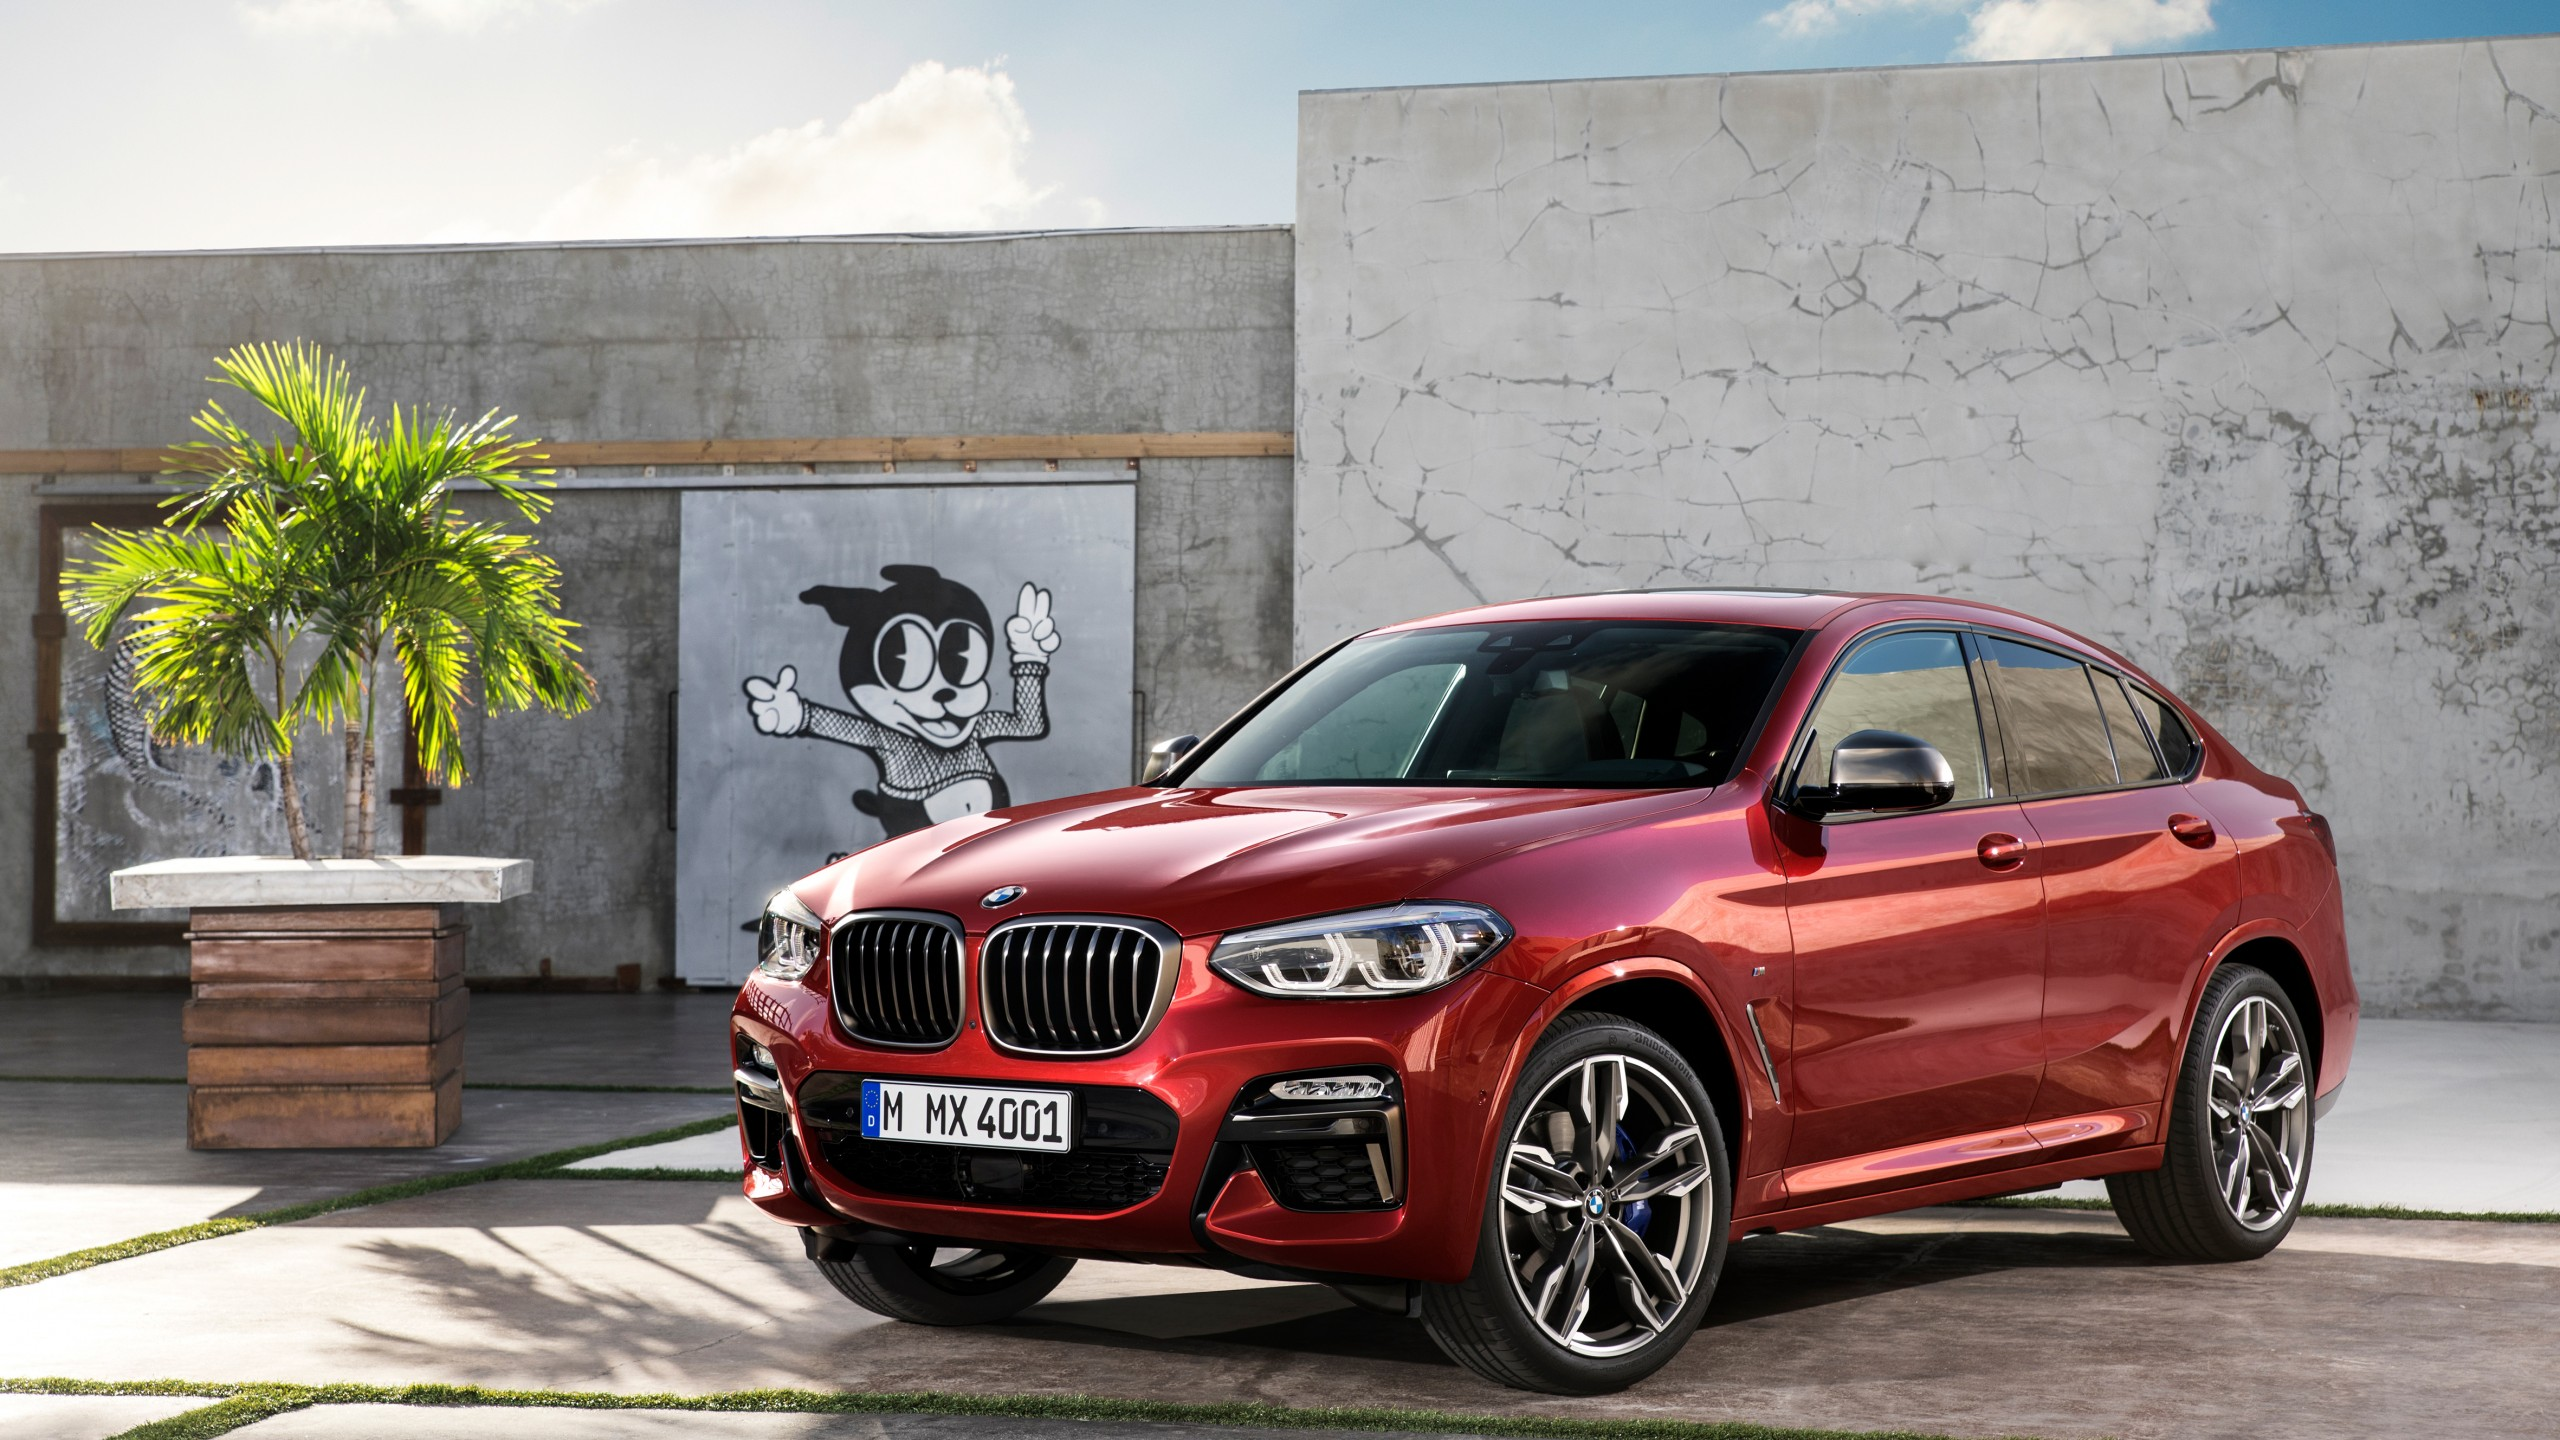 2560x1440 - BMW X4 Wallpapers 31